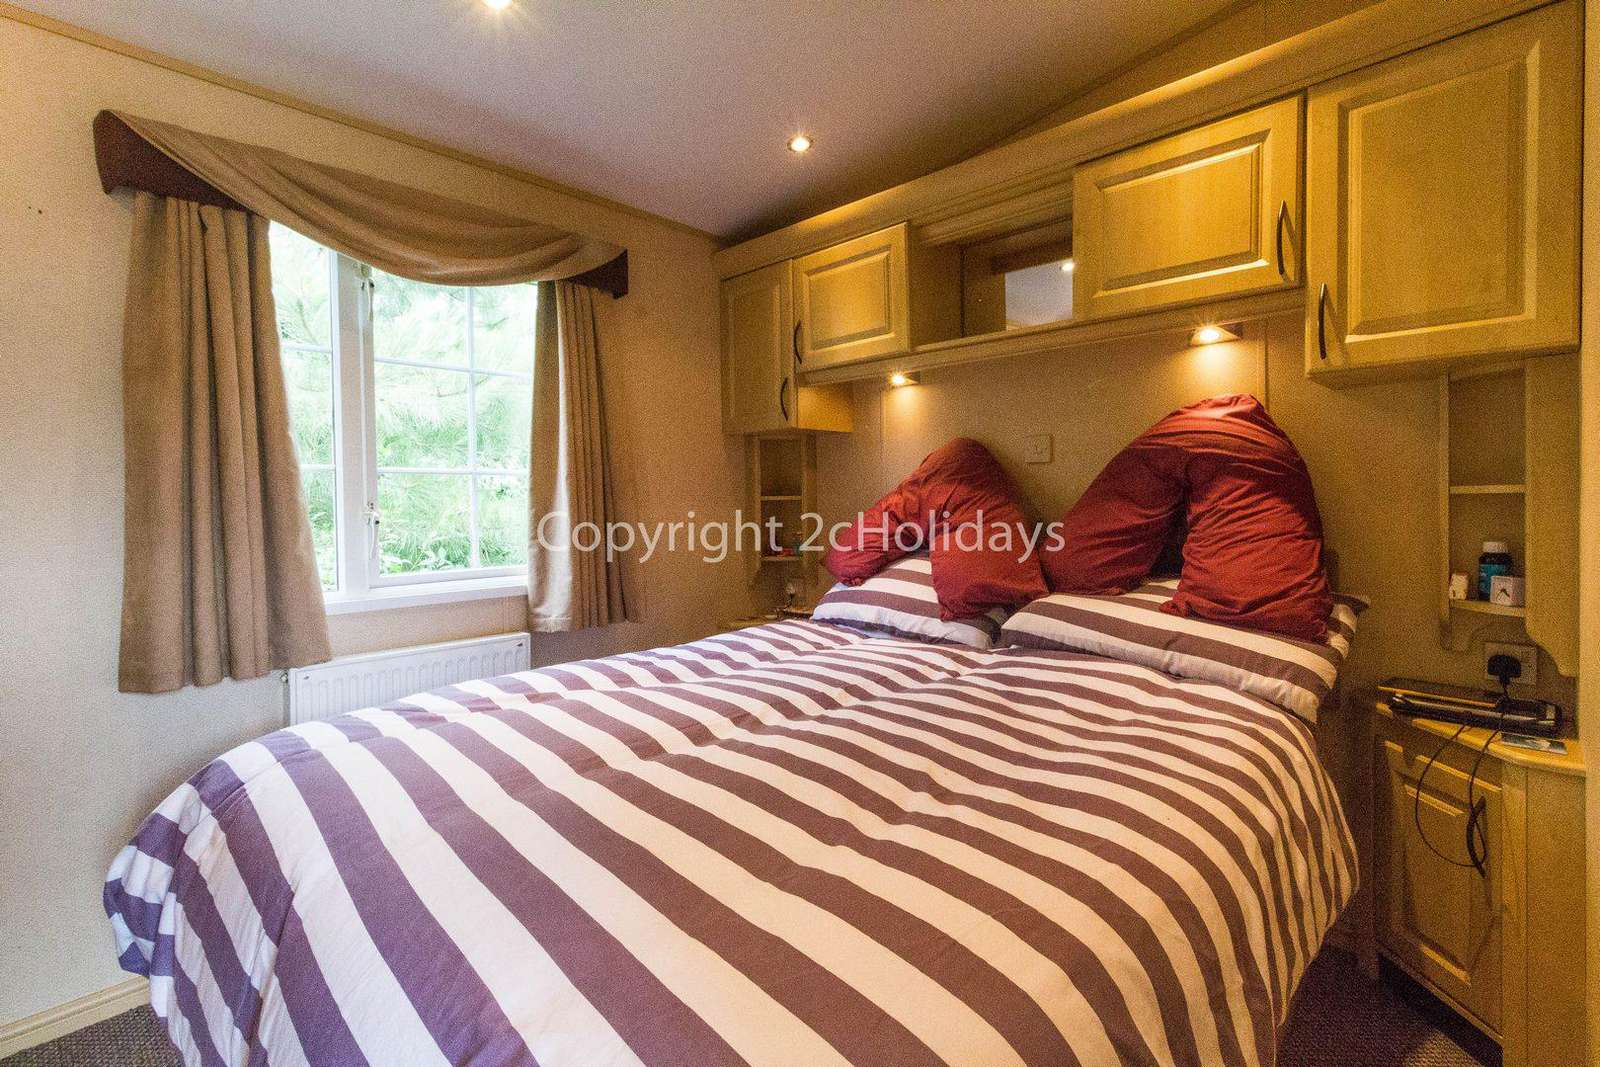 Large bedroom area in this great caravan for hire.